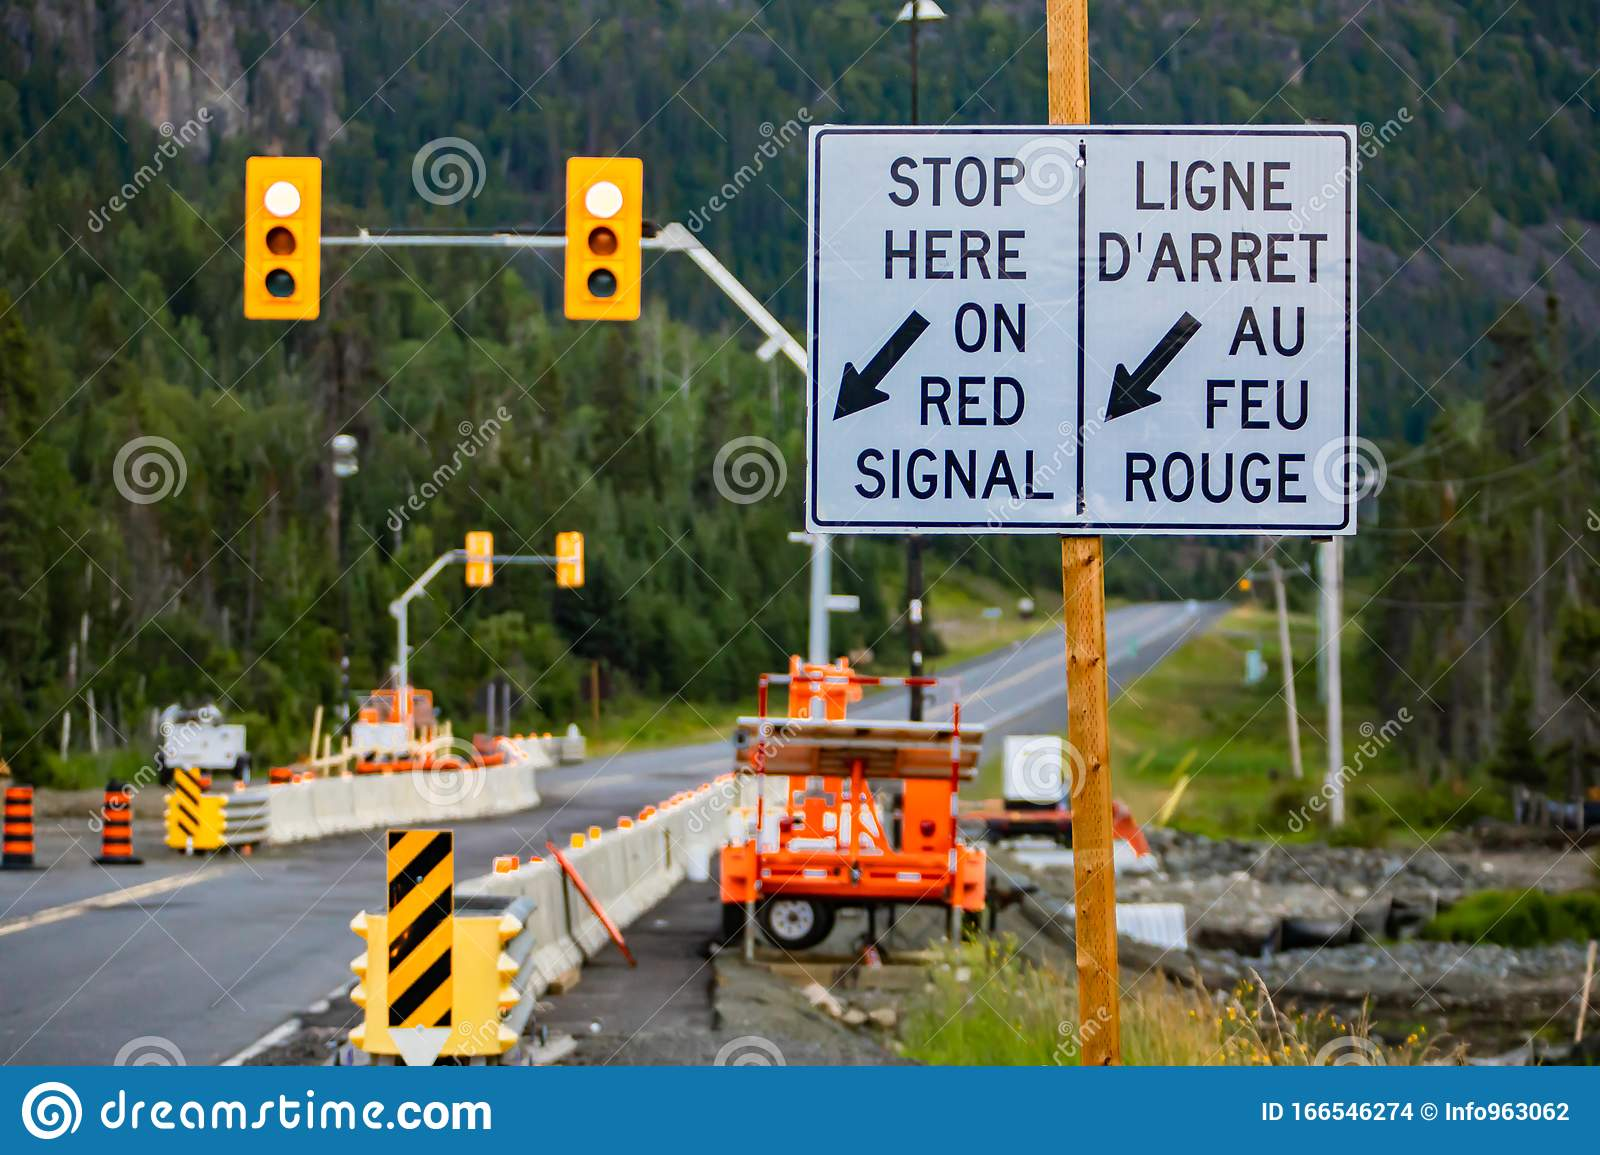 Stop Here On Red Signal Road Sign Stock Photo Image Of Roadside Road 166546274